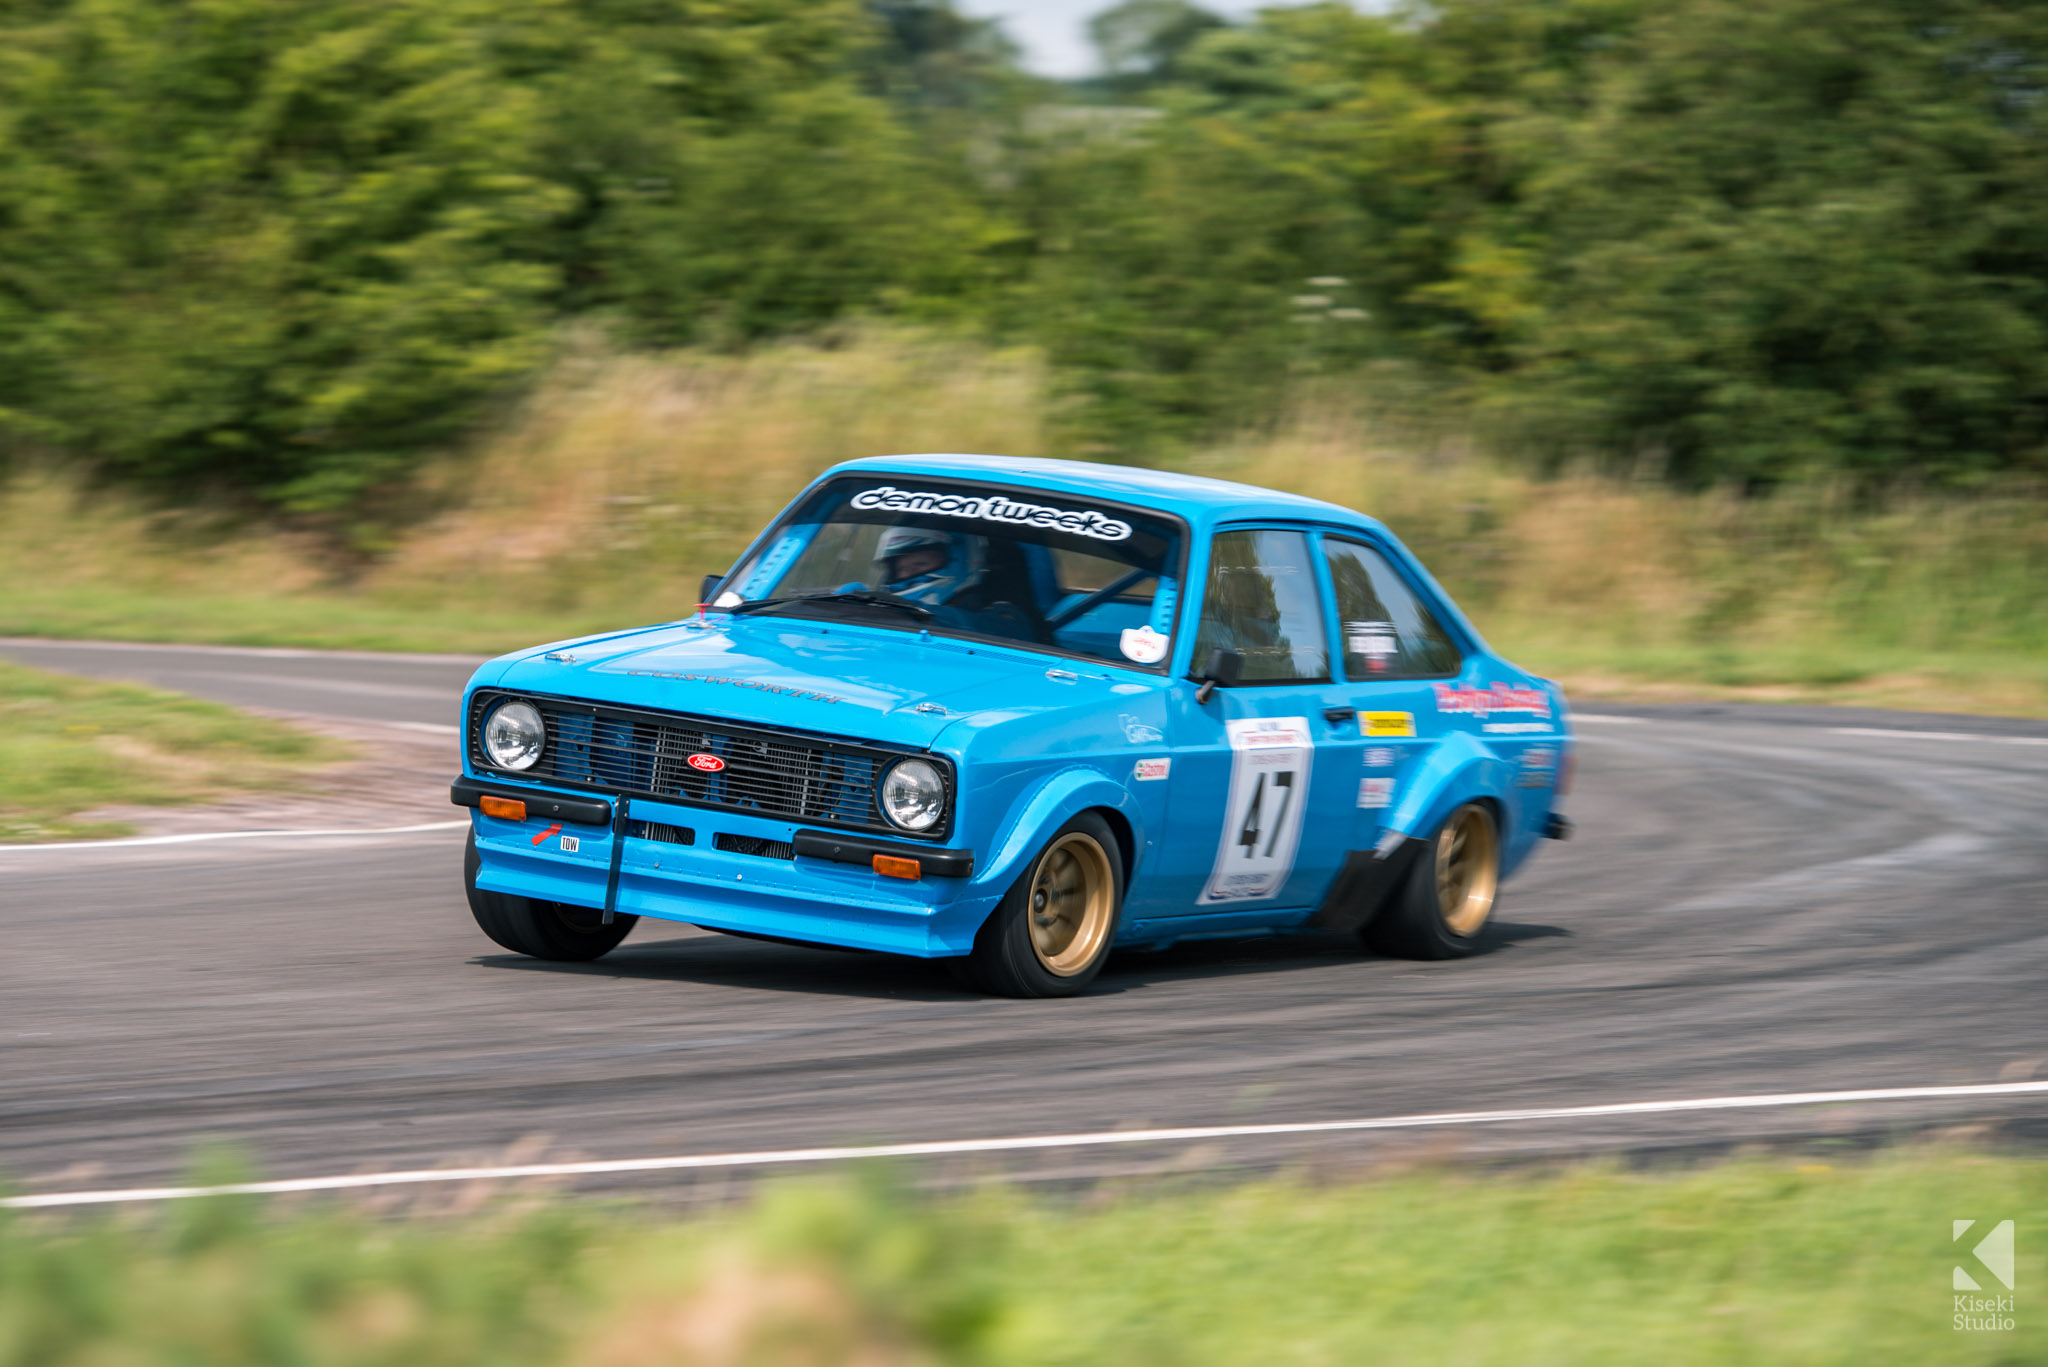 Ford Escort Mk2 Rally Car Curborough Sprint Course